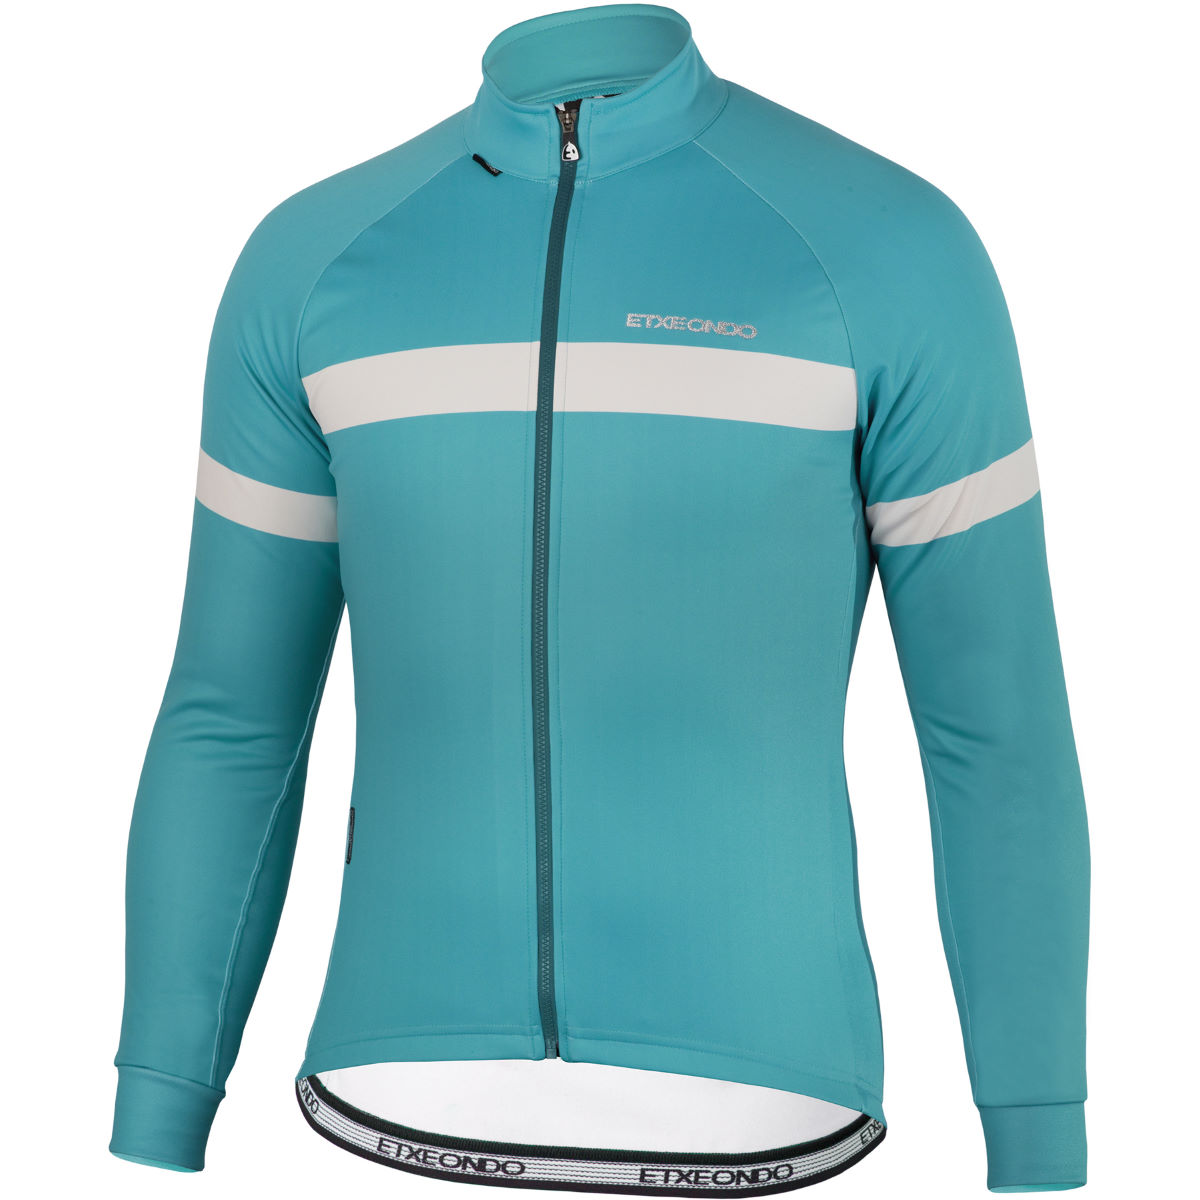 Veste Etxeondo Artu Windstopper - 2XL Blue/Beige Coupe-vents vélo